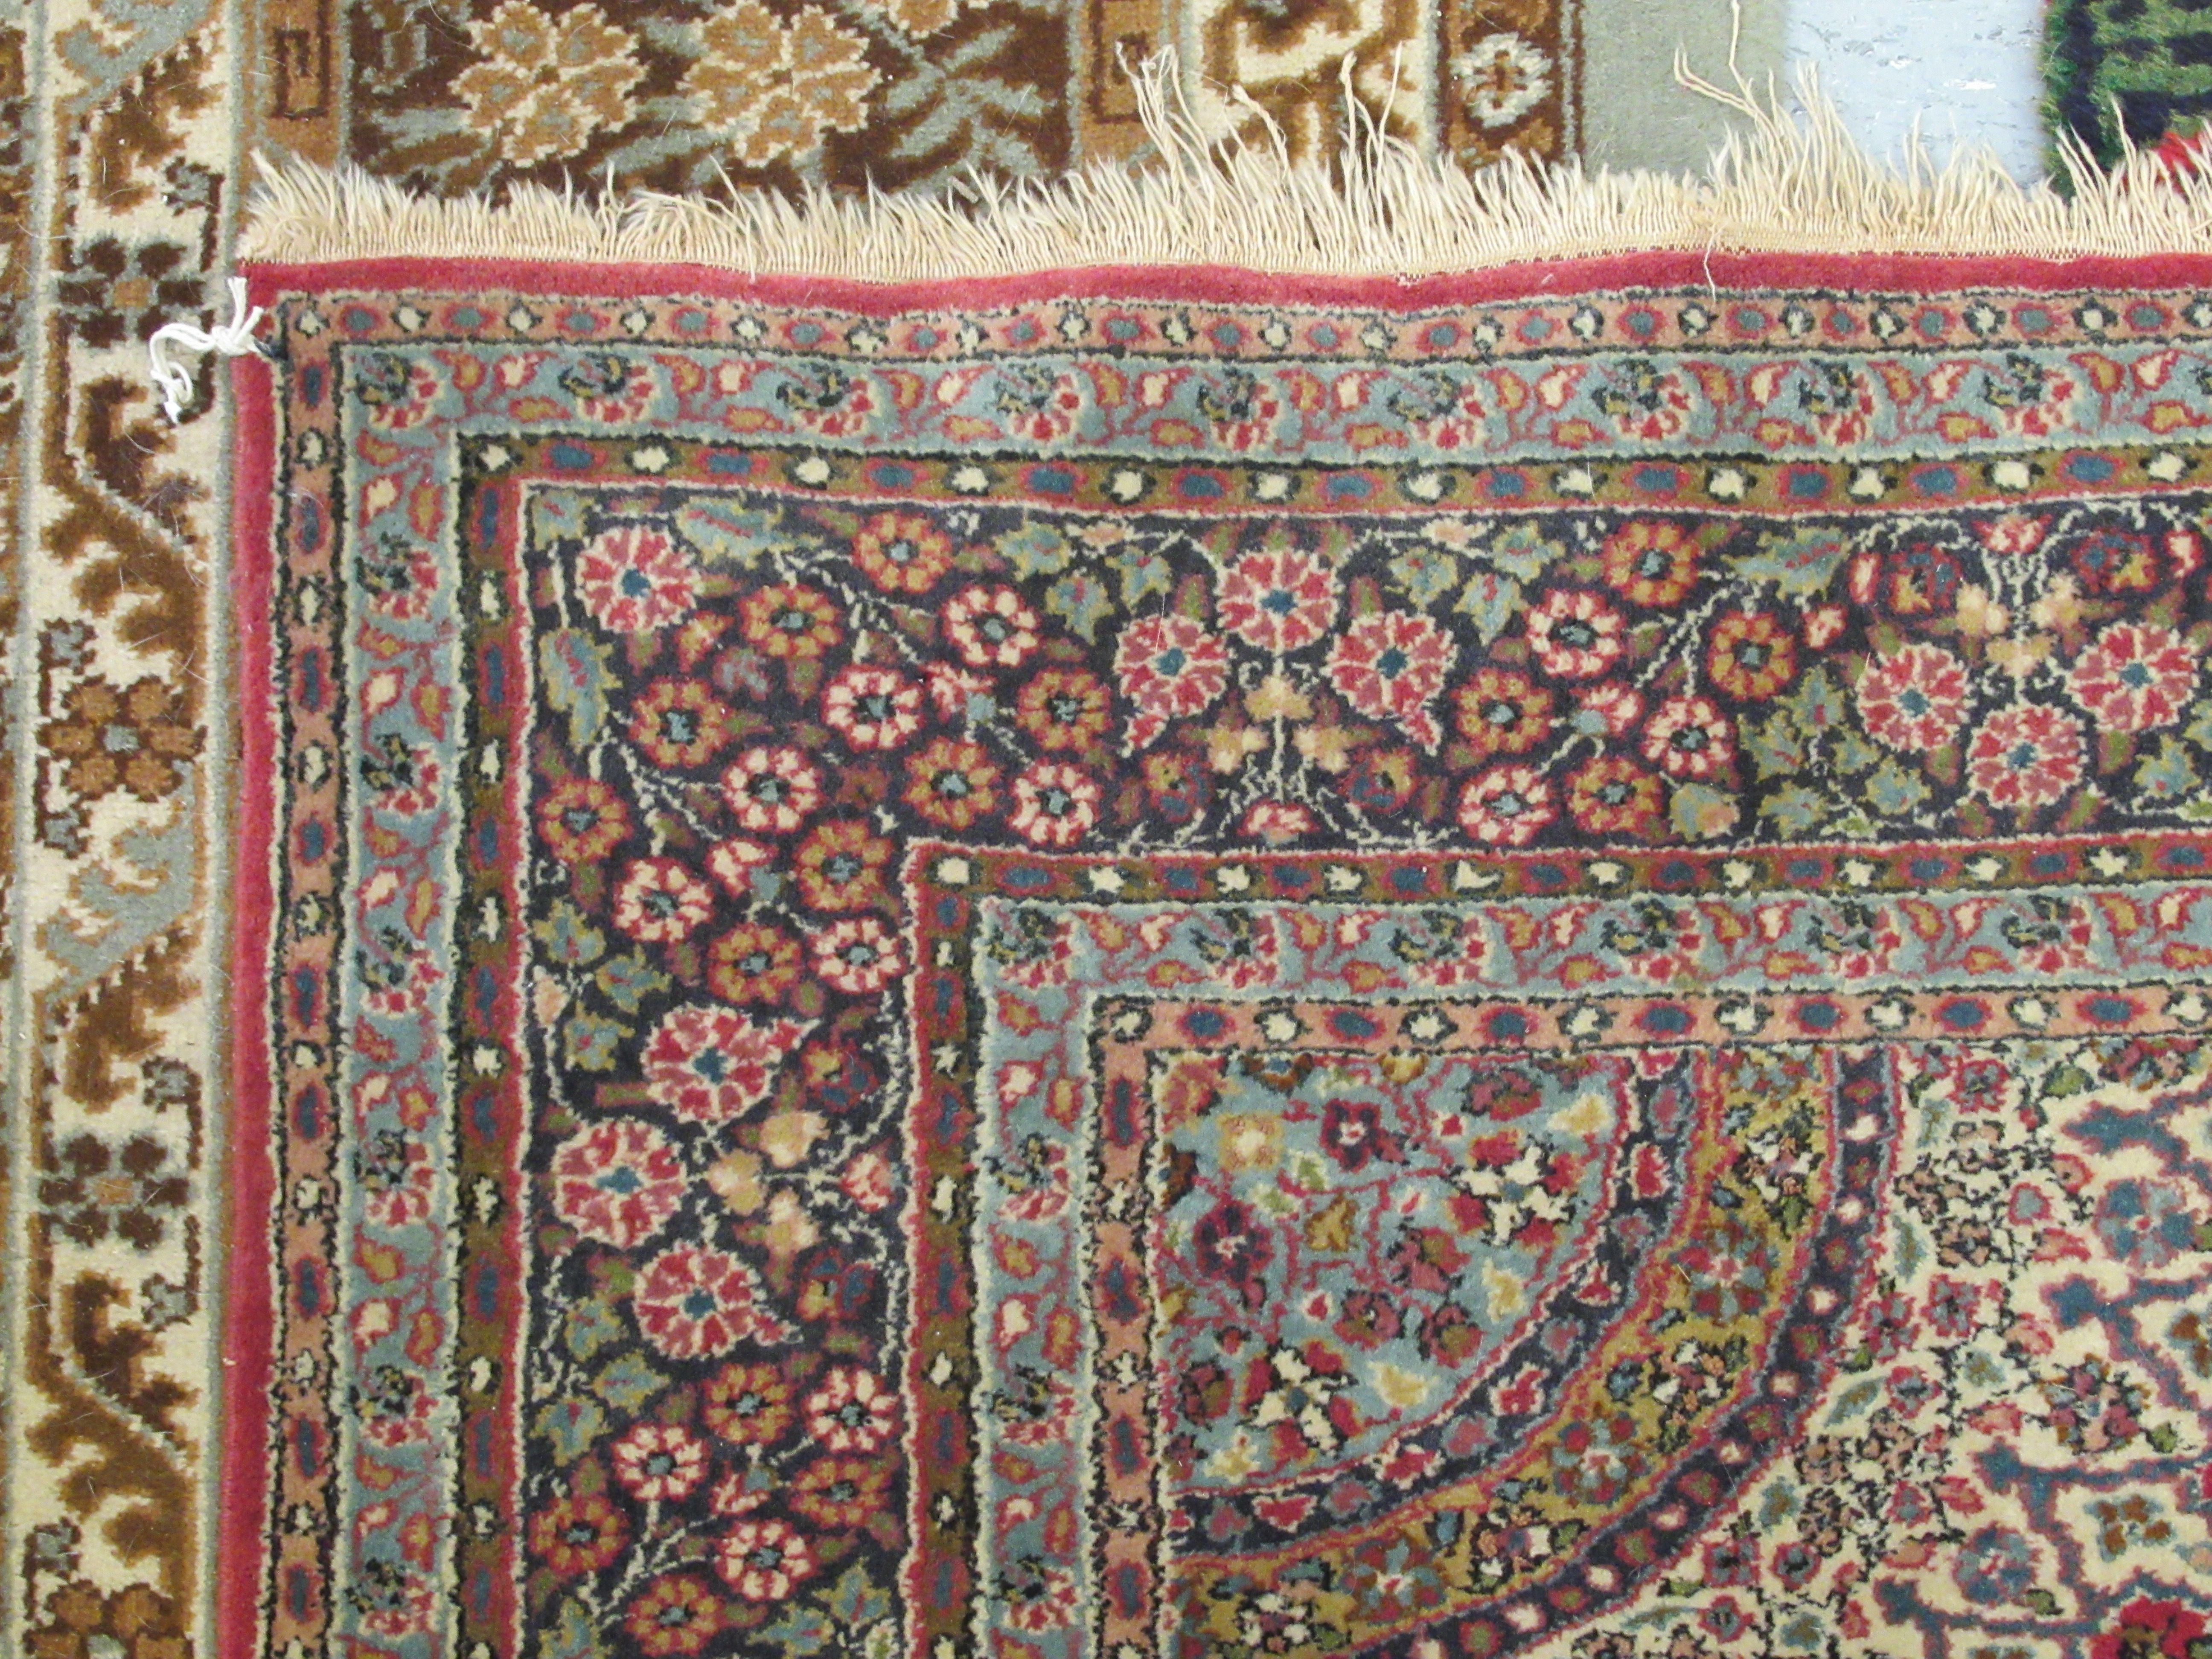 A Persian rug, decorated with a central starburst design medallion, bordered by floral designs, on a - Image 4 of 4